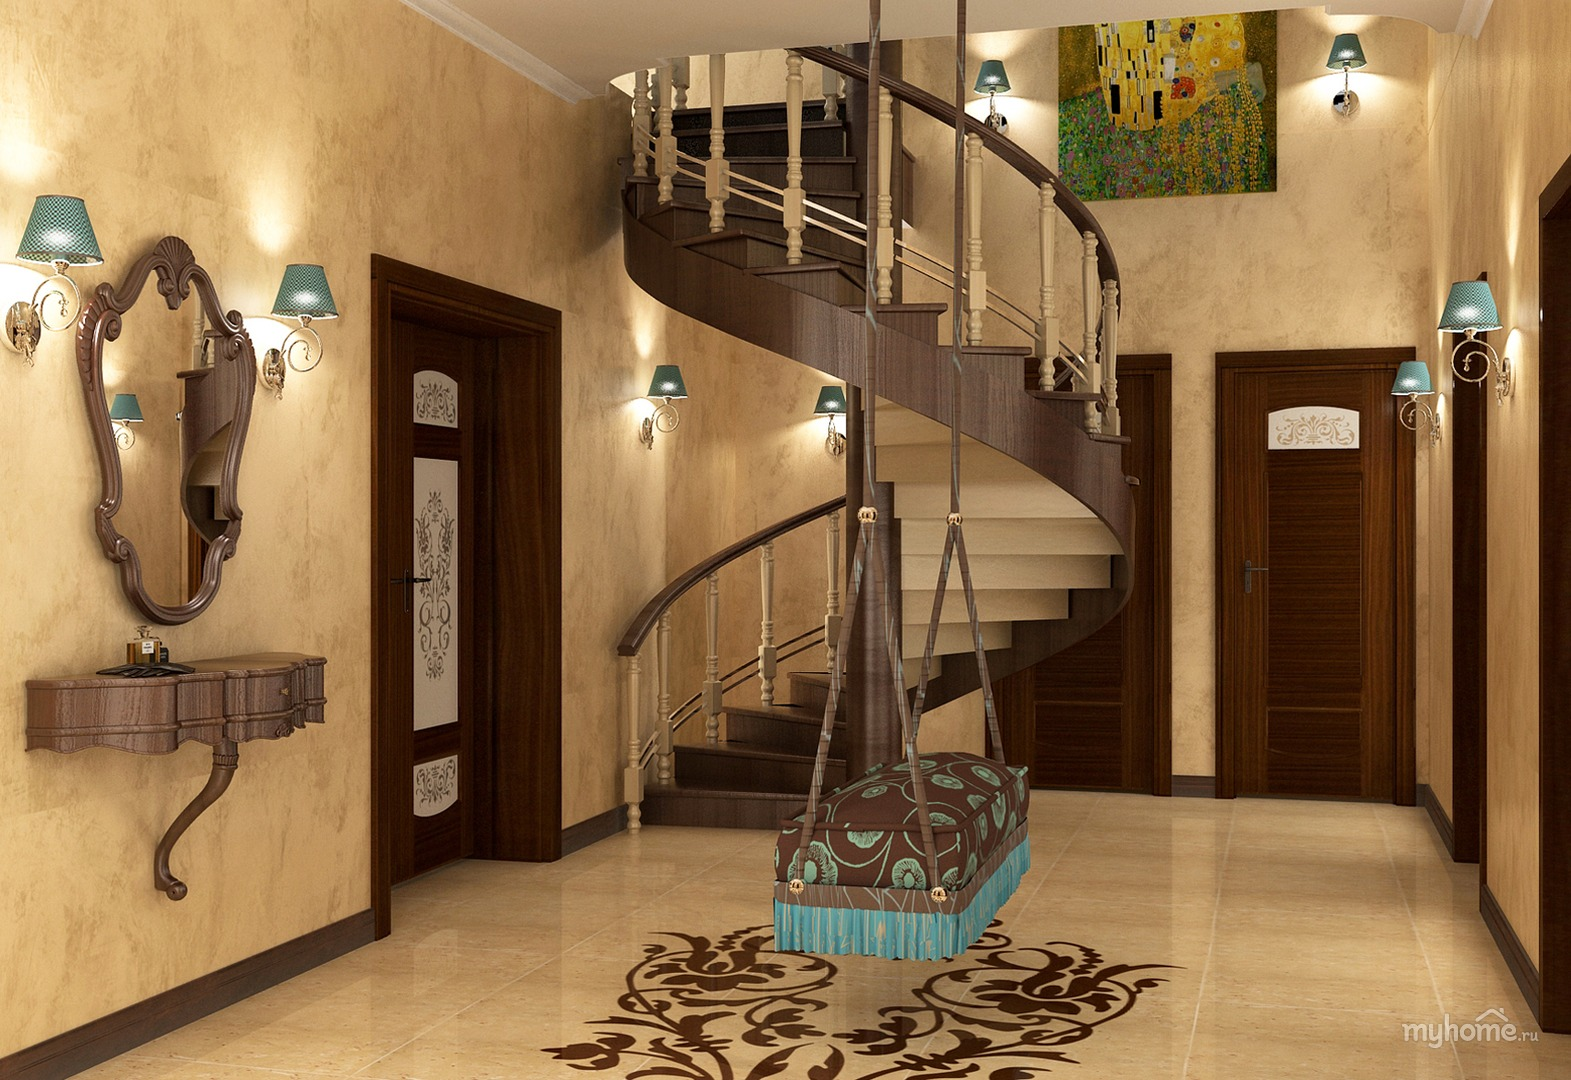 A small hall with a staircase to the nd floor corridor with